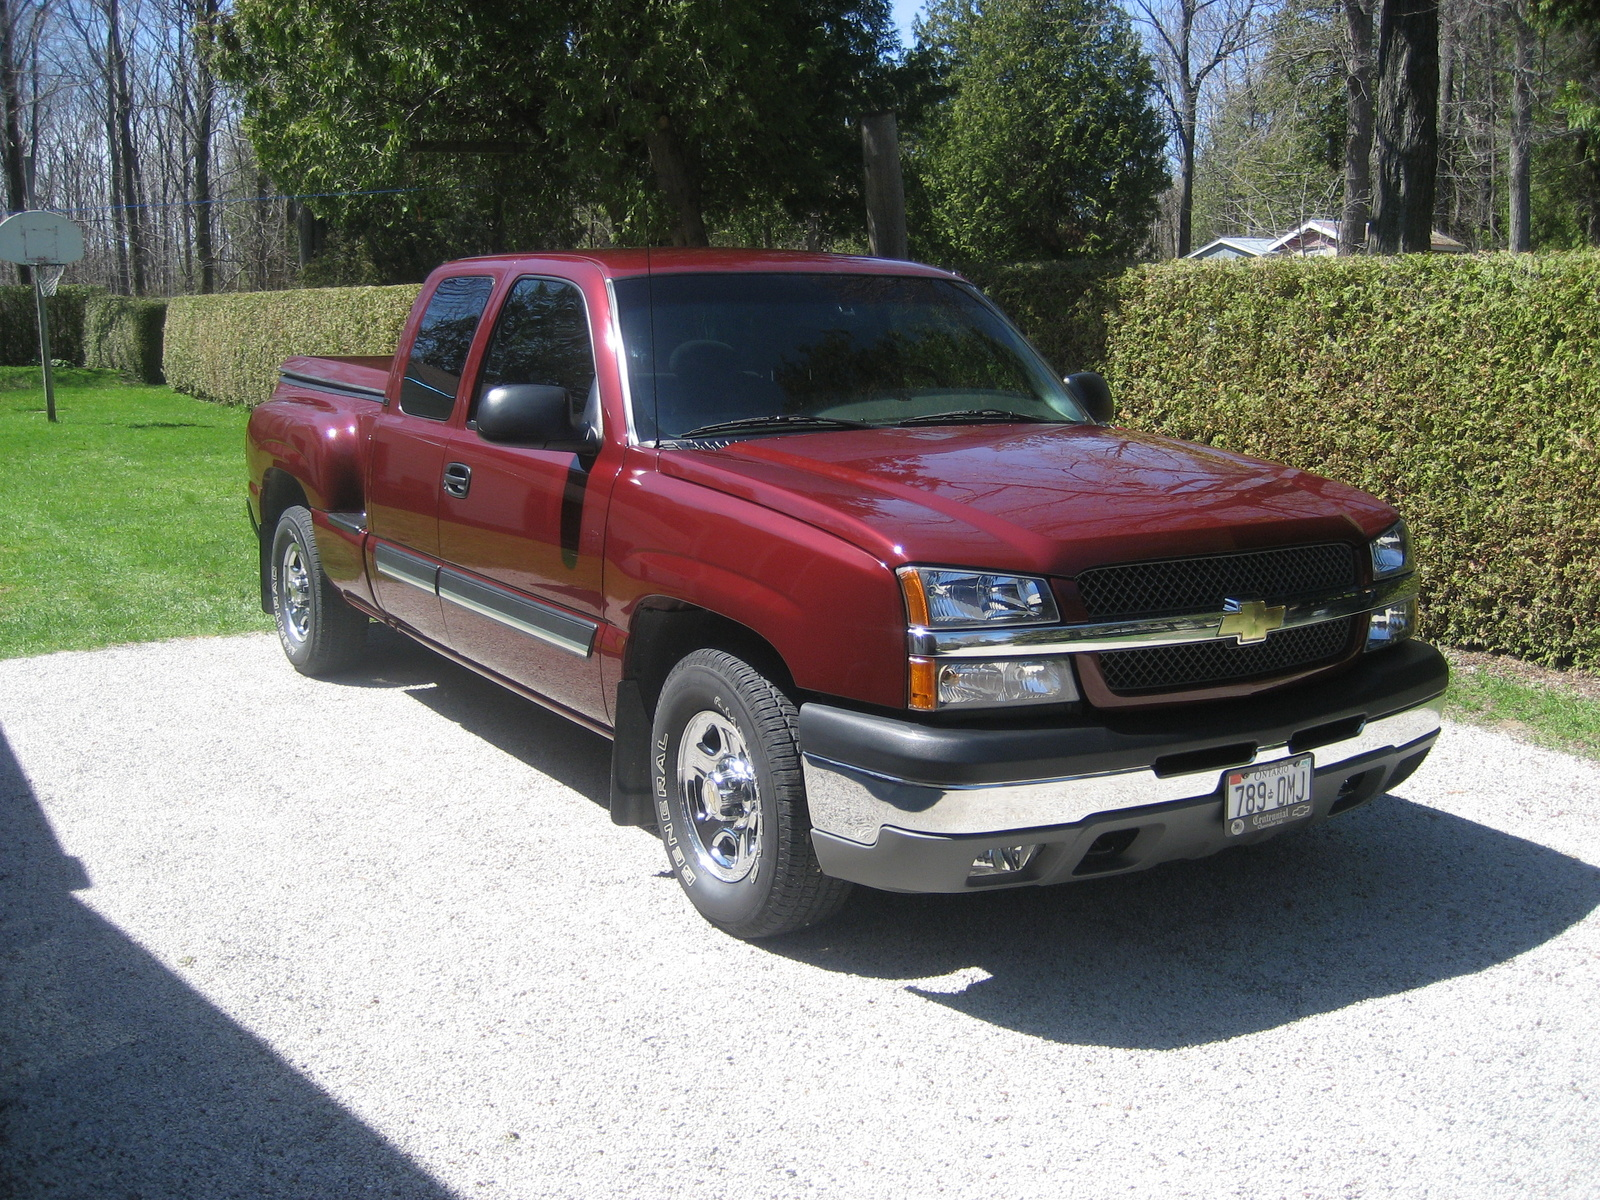 Chevrolet Silverado Short Bed Wd Pic on 1999 Chevy Lumina Interior